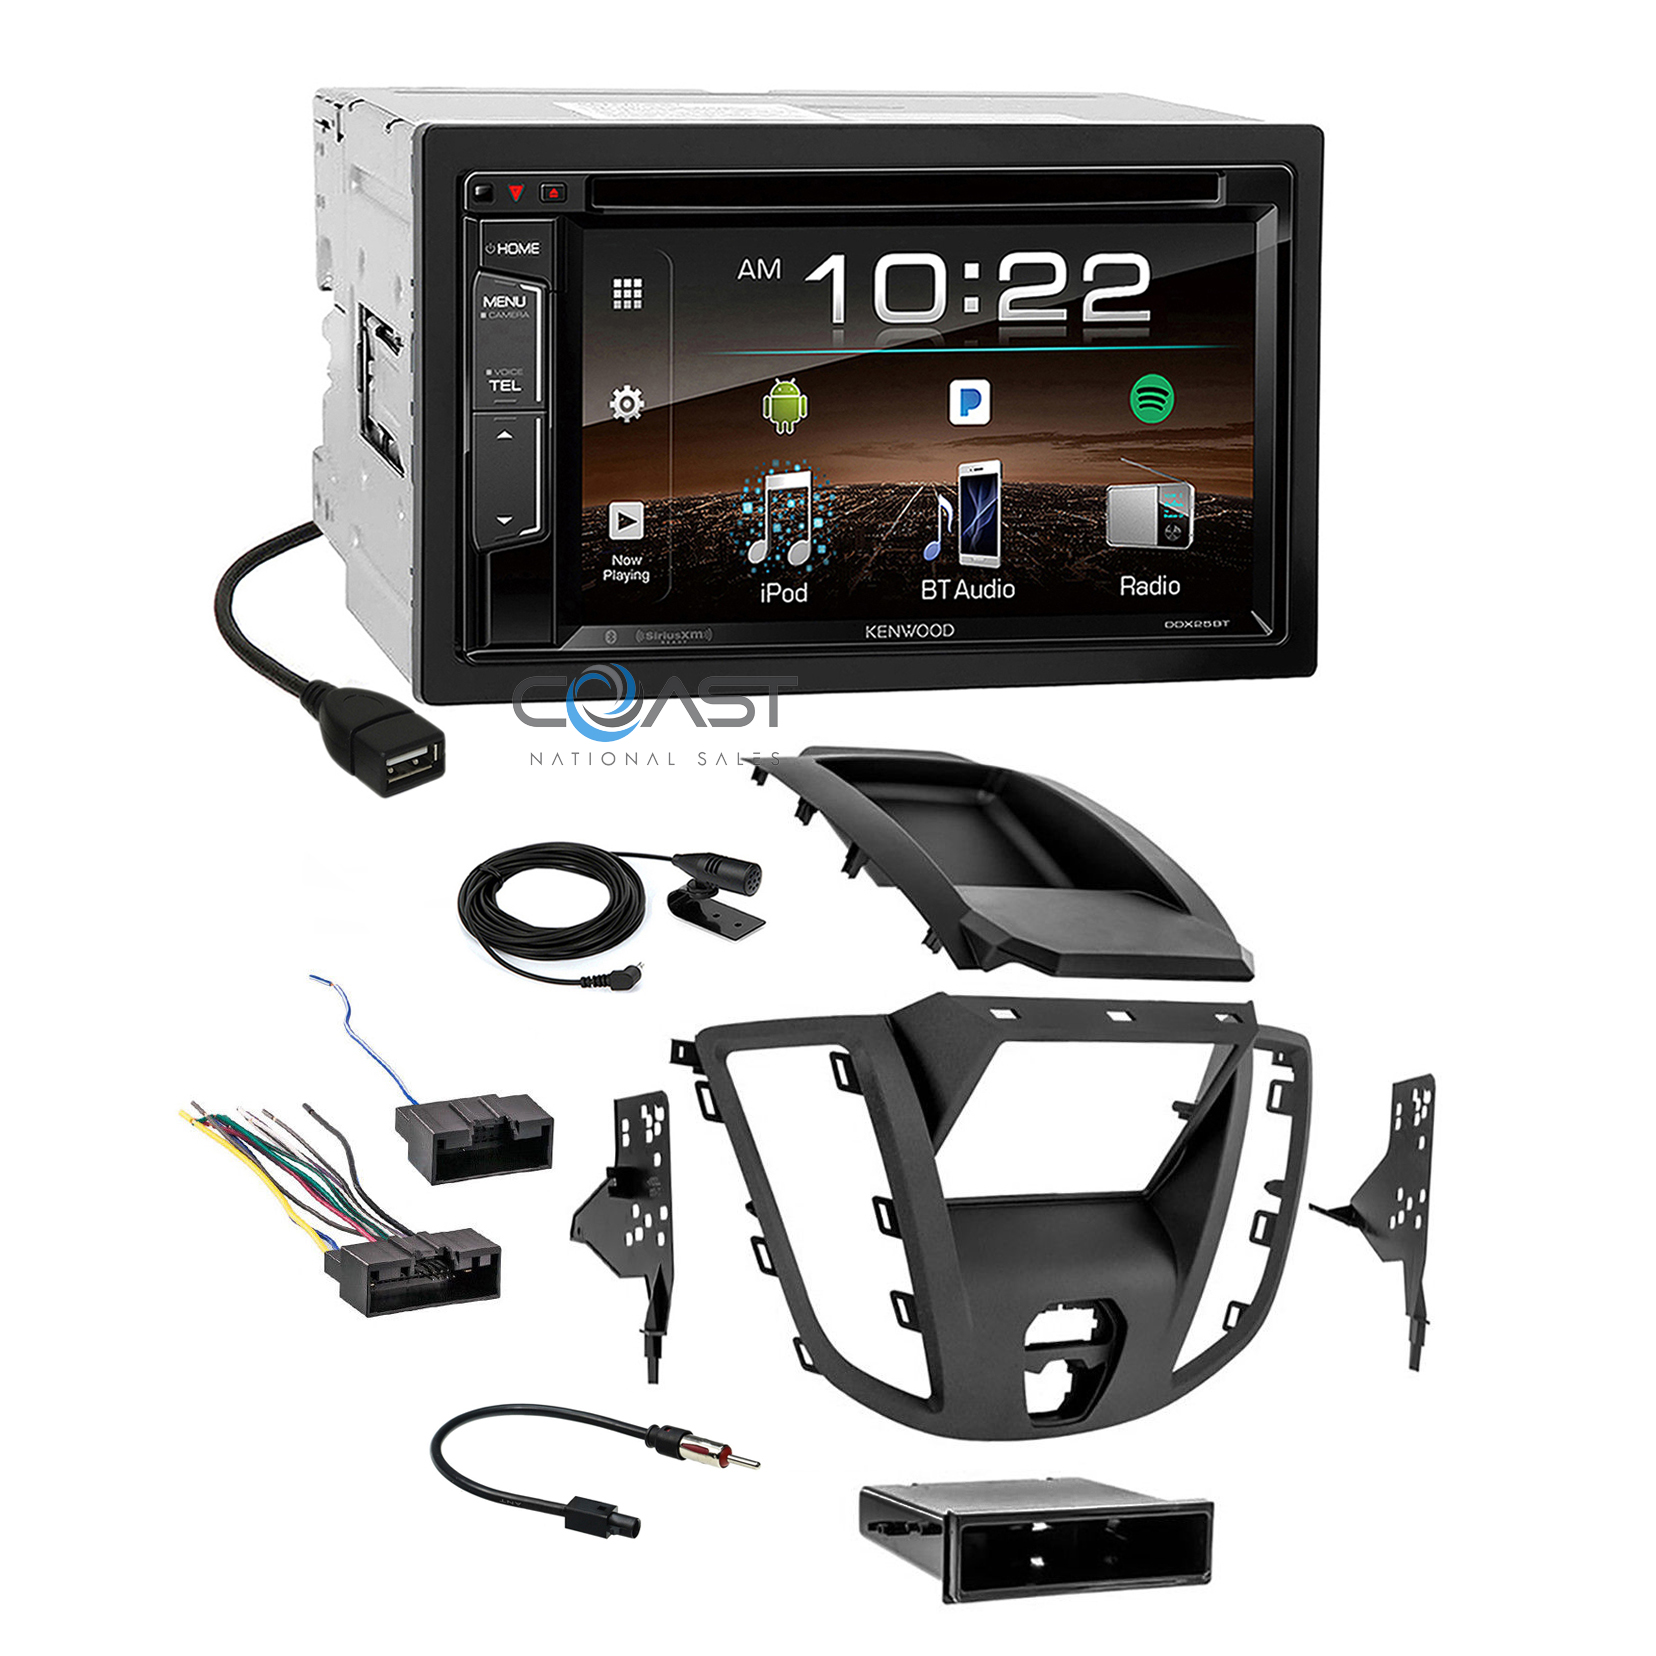 hight resolution of kenwood 2018 dvd sirius stereo 2 din dash kit harness for 2015 16 diagram also kenwood double din car stereo further 2016 sport cars